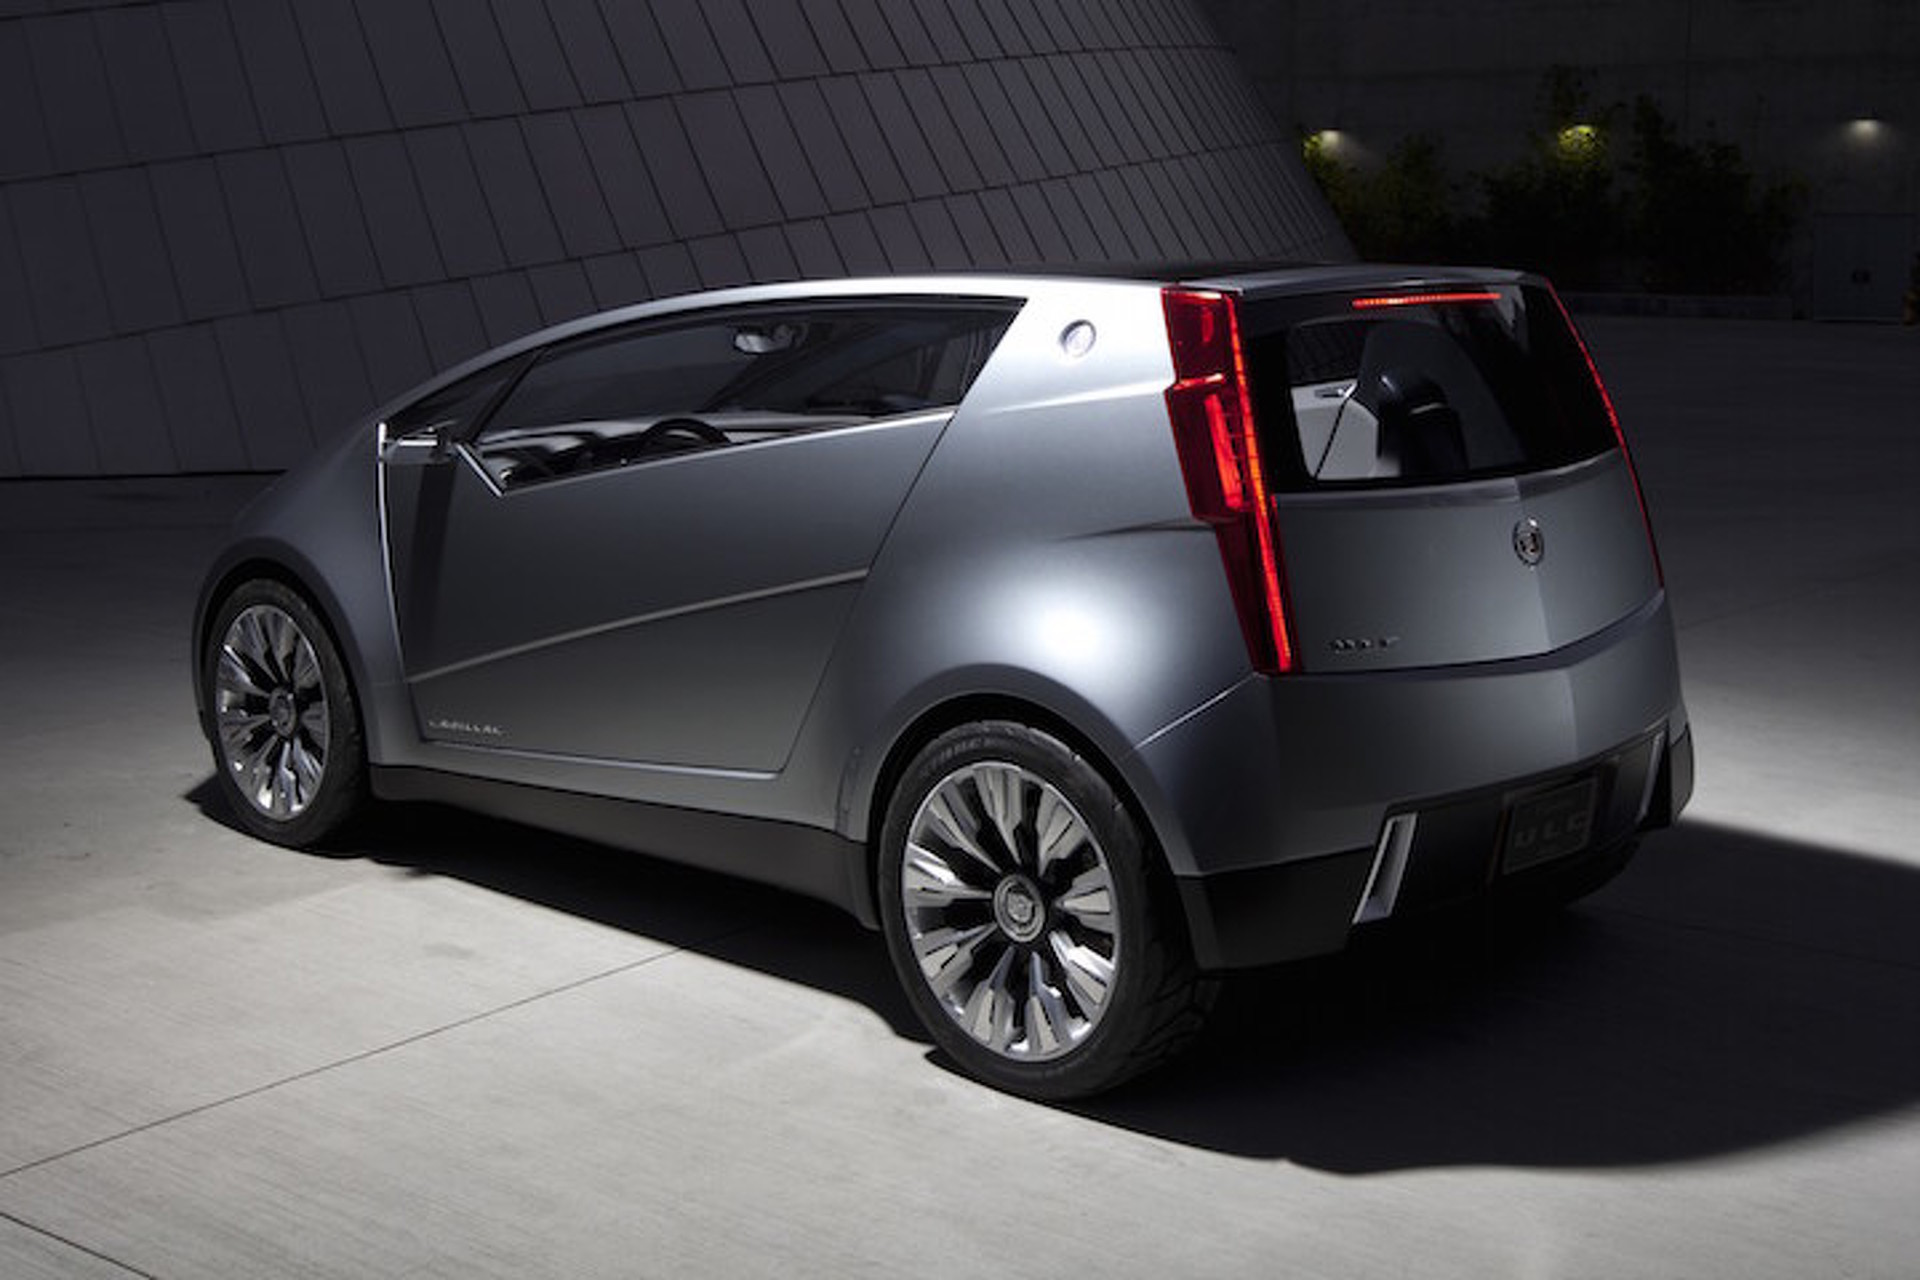 Is Cadillac Considering a Cruze-Based Hatchback for the U.S.?